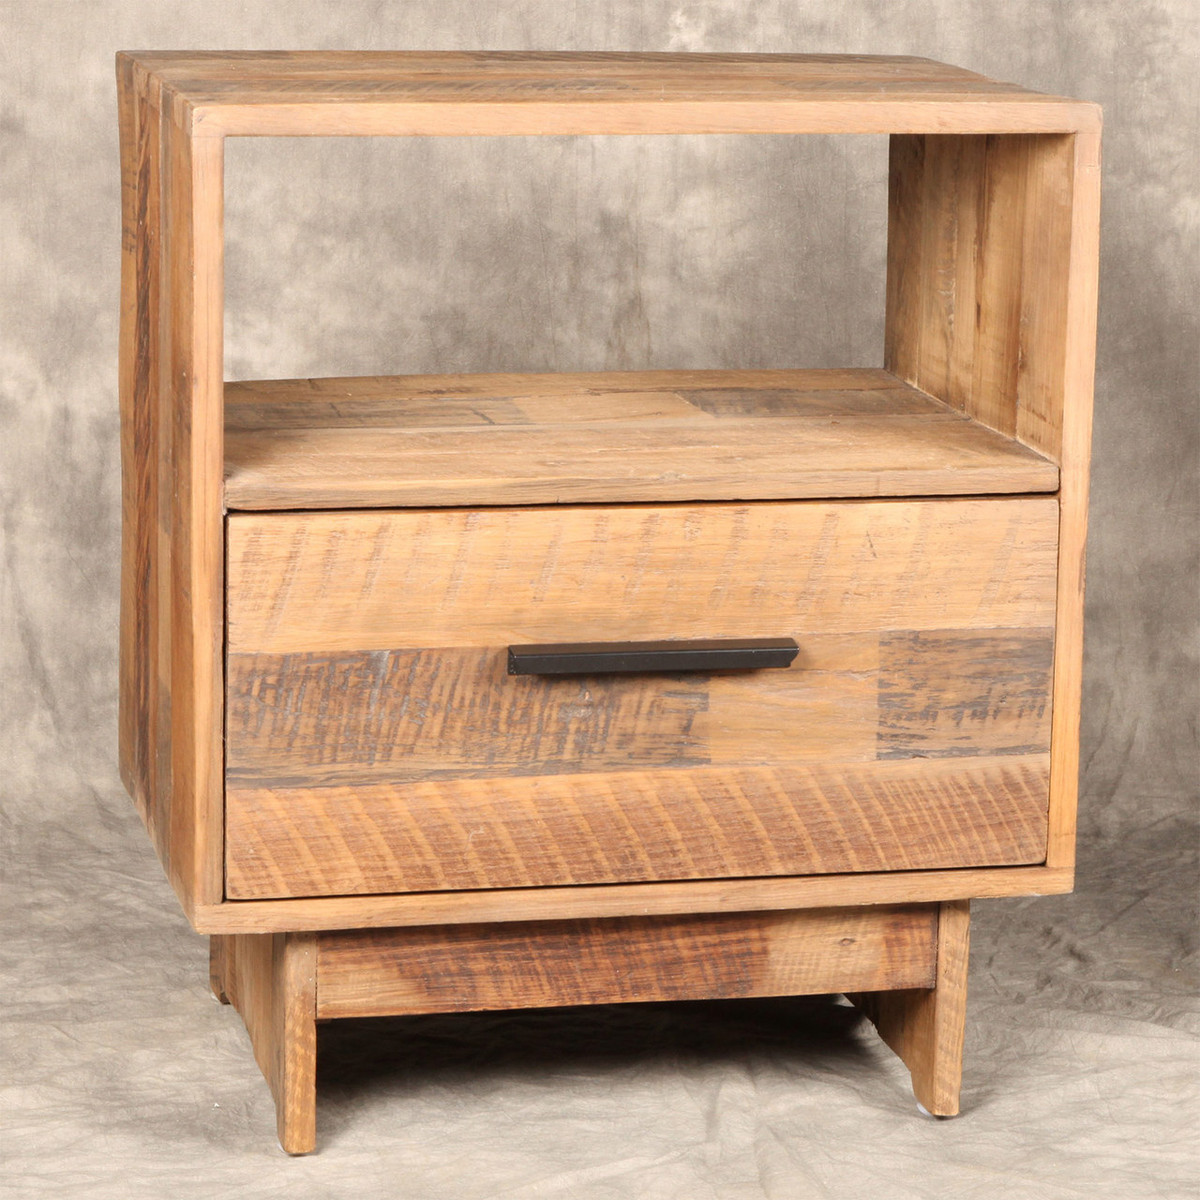 Angora reclaimed wood 1 drawer end table